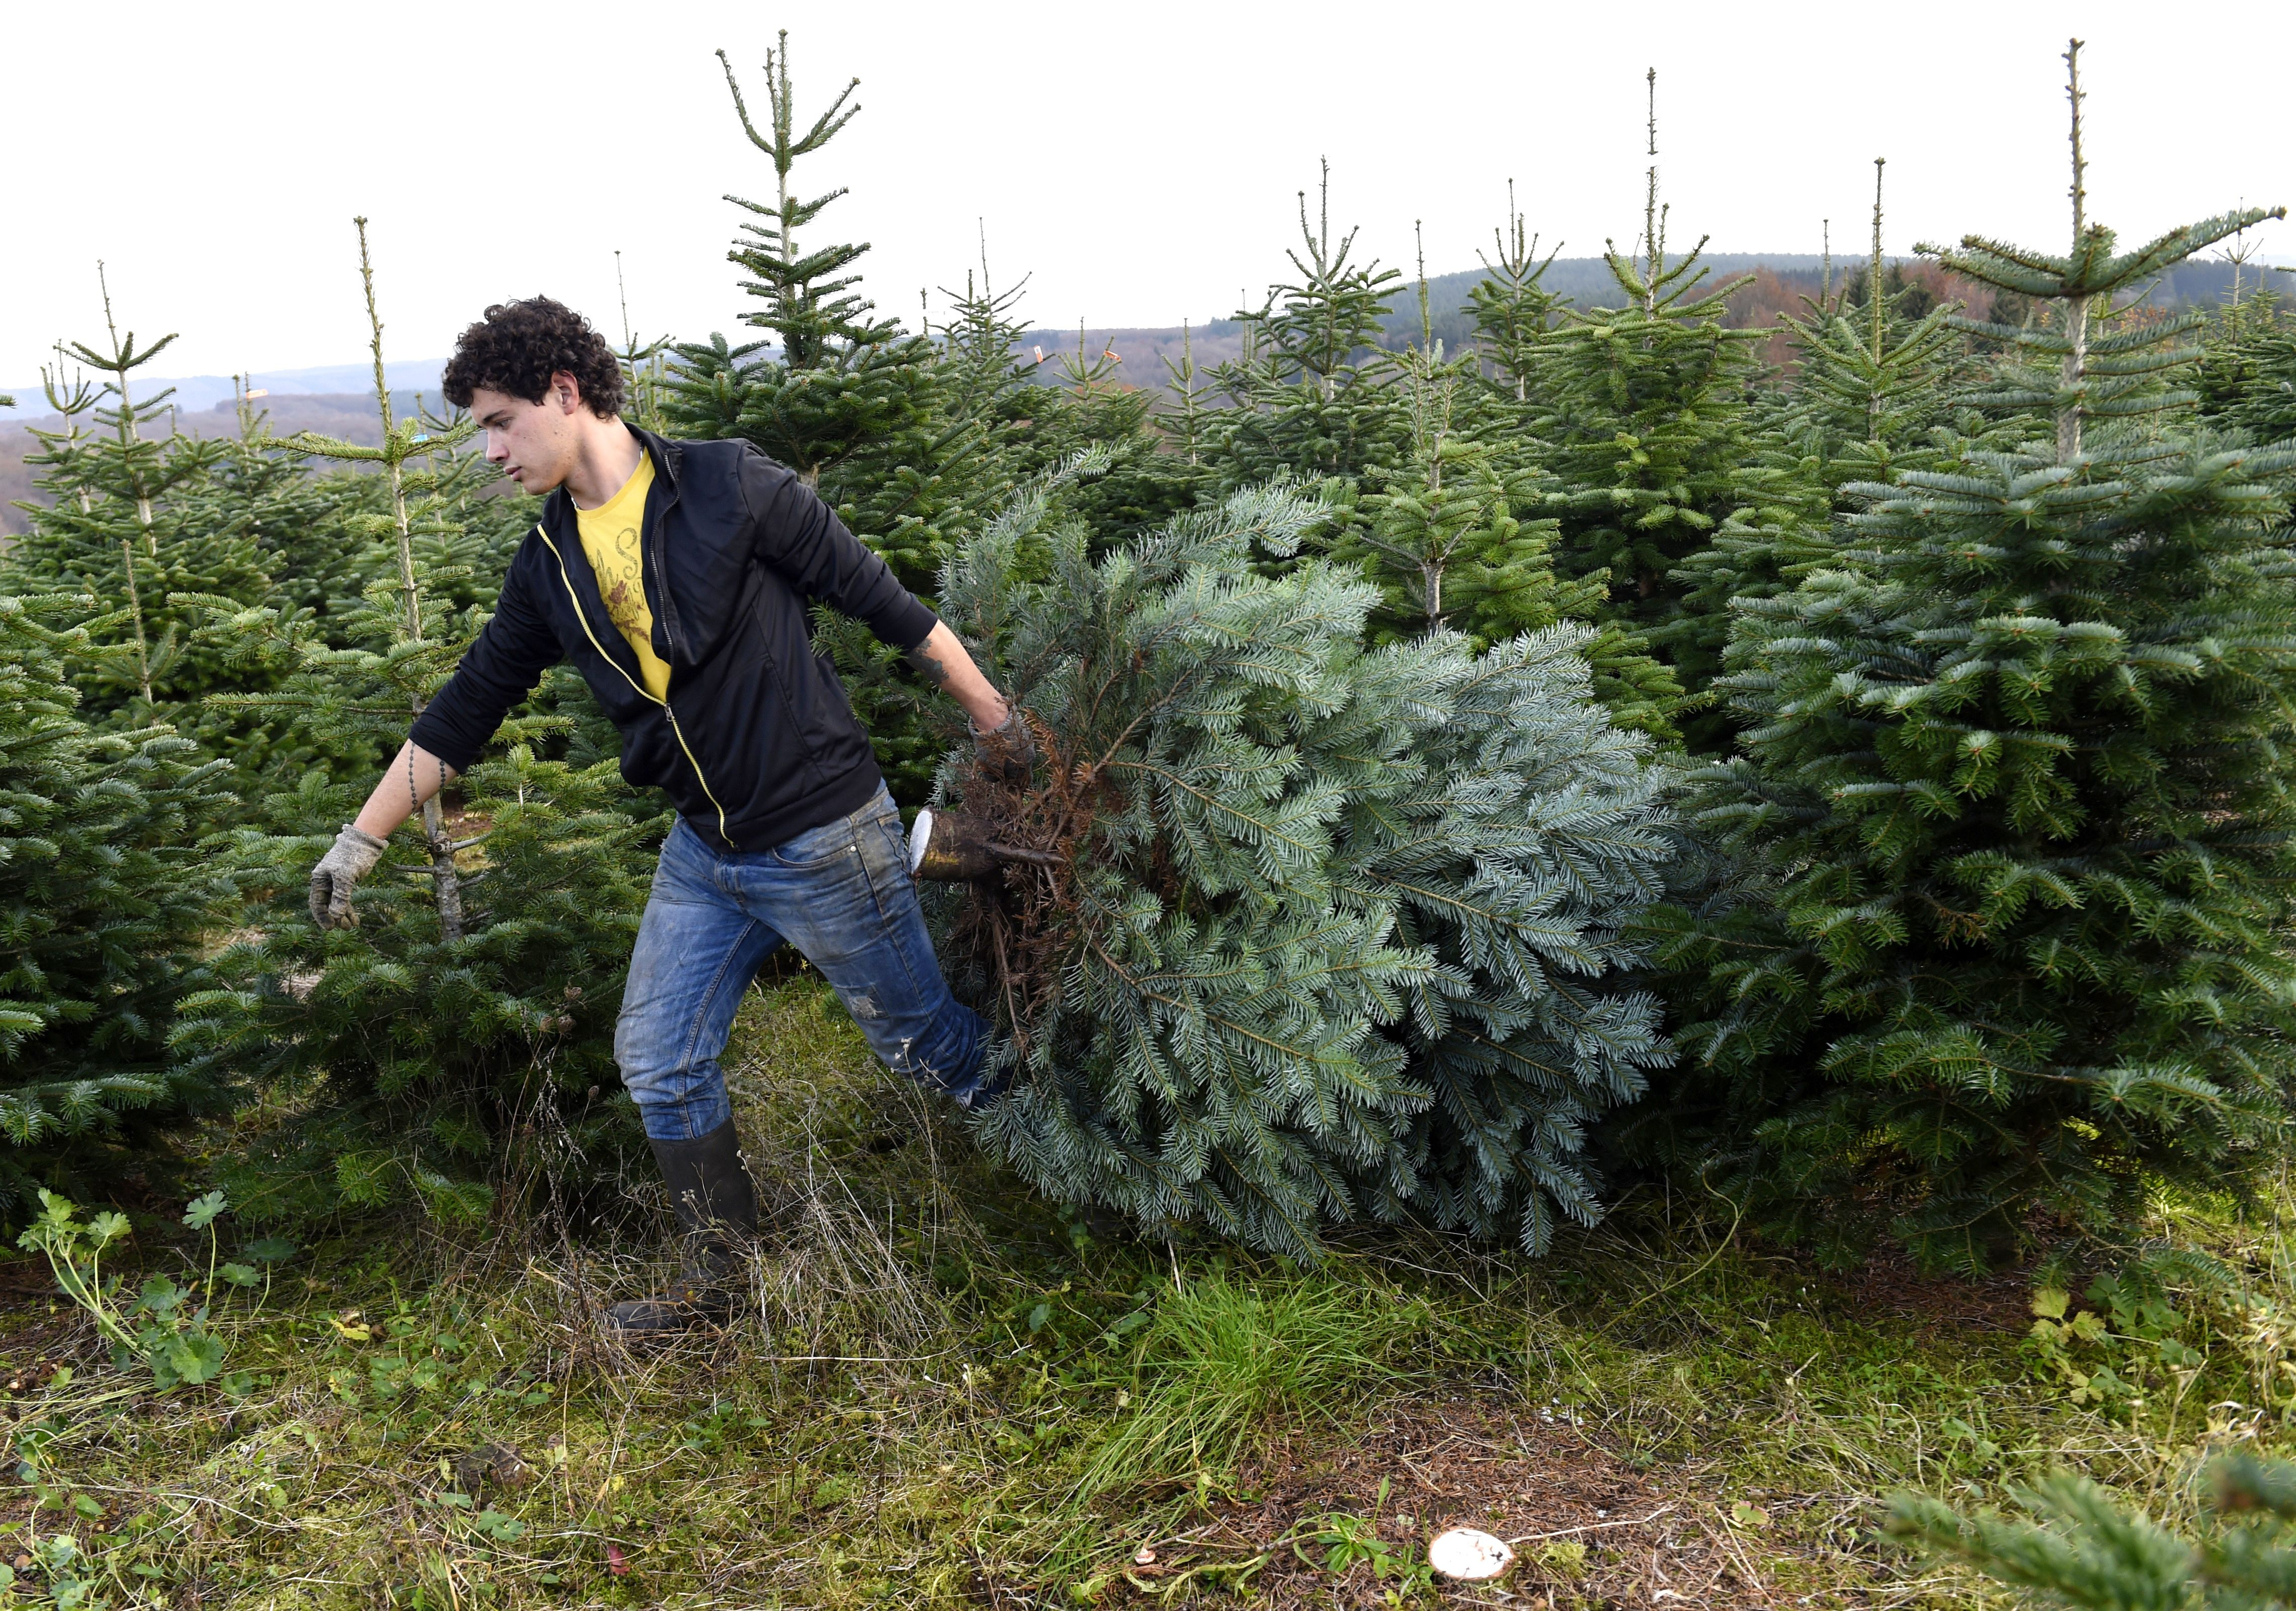 Christmas Tree: What You Need To Know To Cut Down Your Own